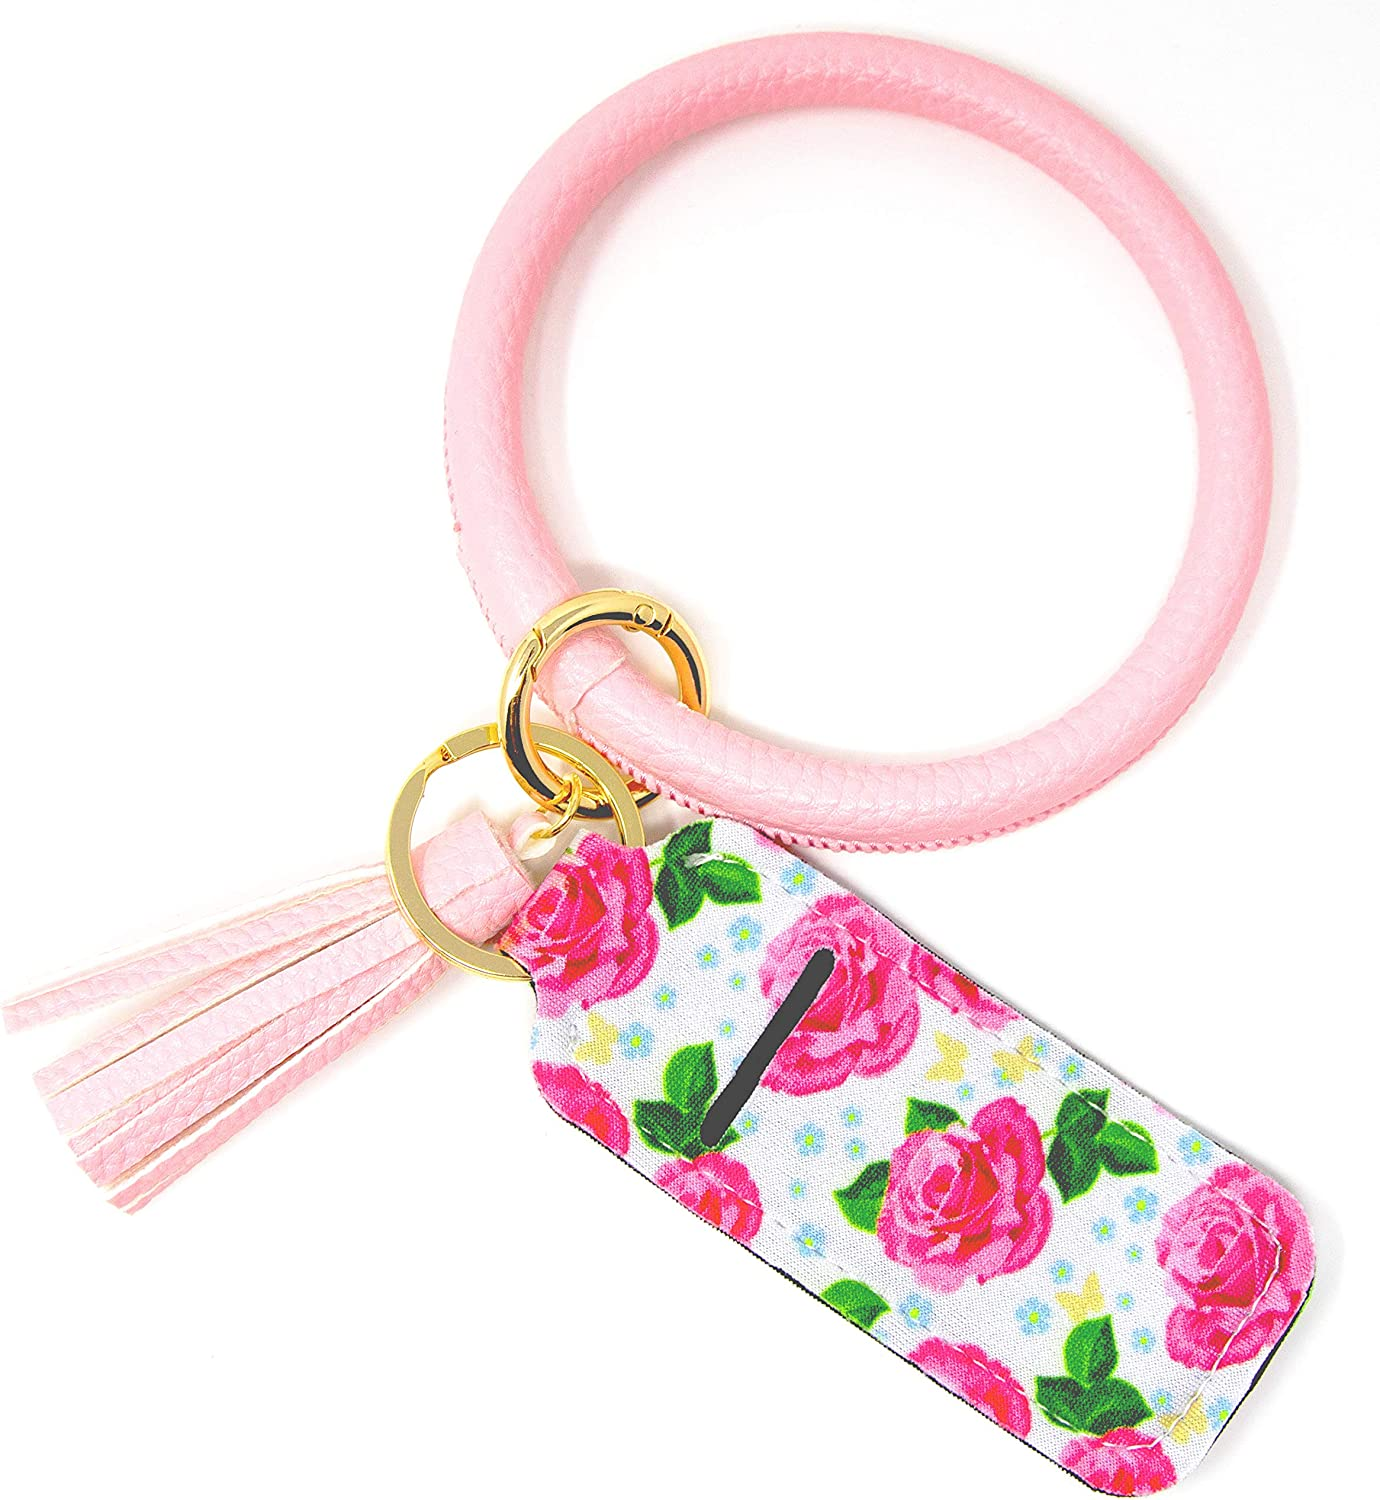 Light Pink Flower Leather Key Ring Bracelet Keychain for Women Wristlet with Circle Keyring and Neoprene Chapstick Lipstick Holder by Jackson and Co.…